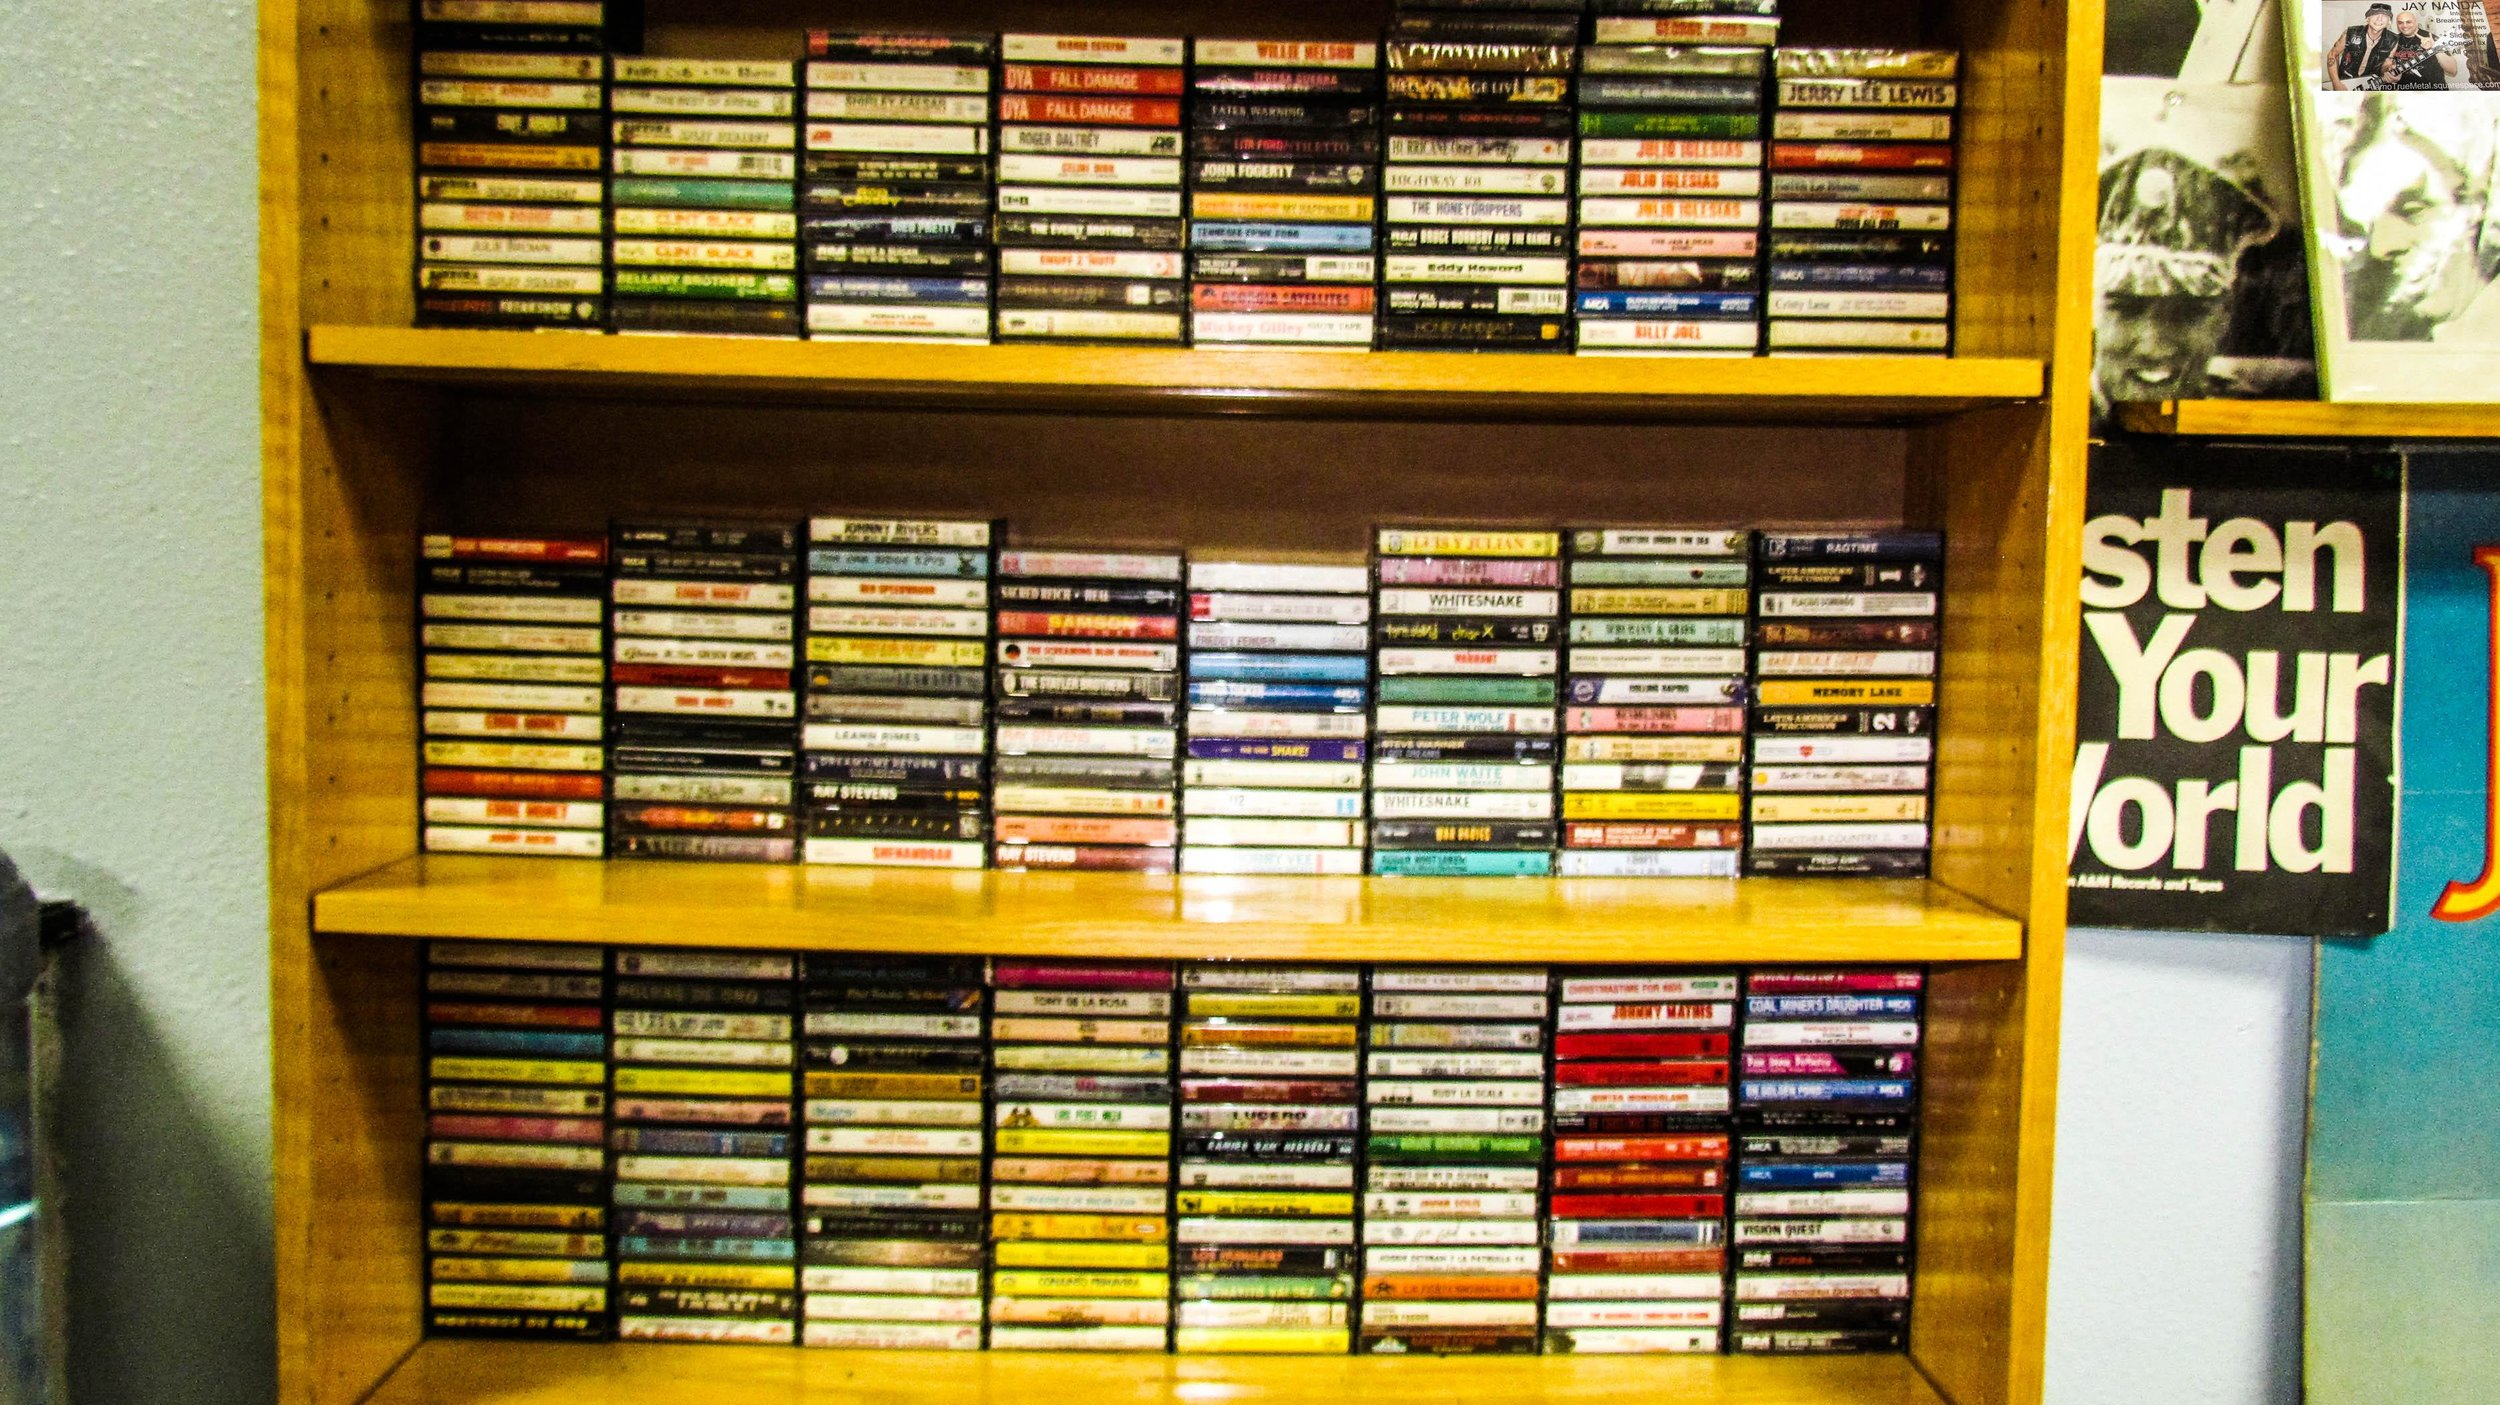 The musical selections at Imagine Books & Records are vast and furious.